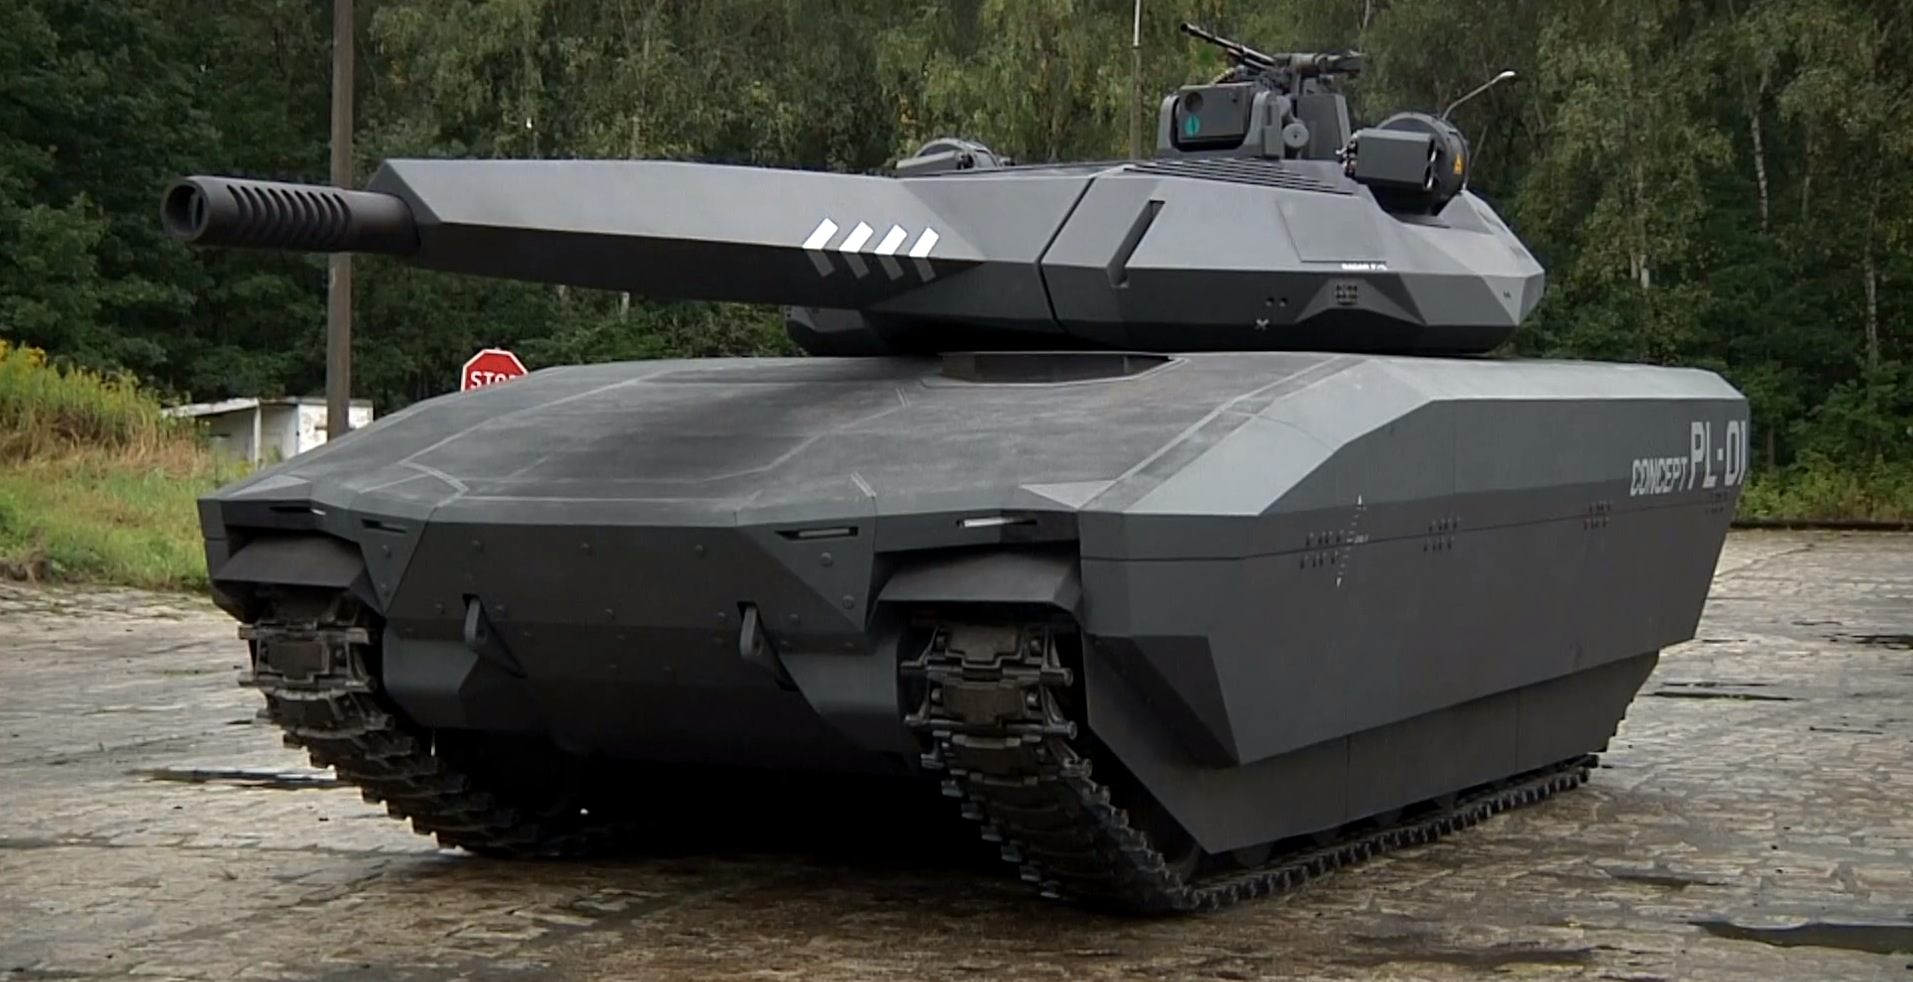 The PL-01 Stealth Tank Is as Absurdly Cool as a Lamborghini